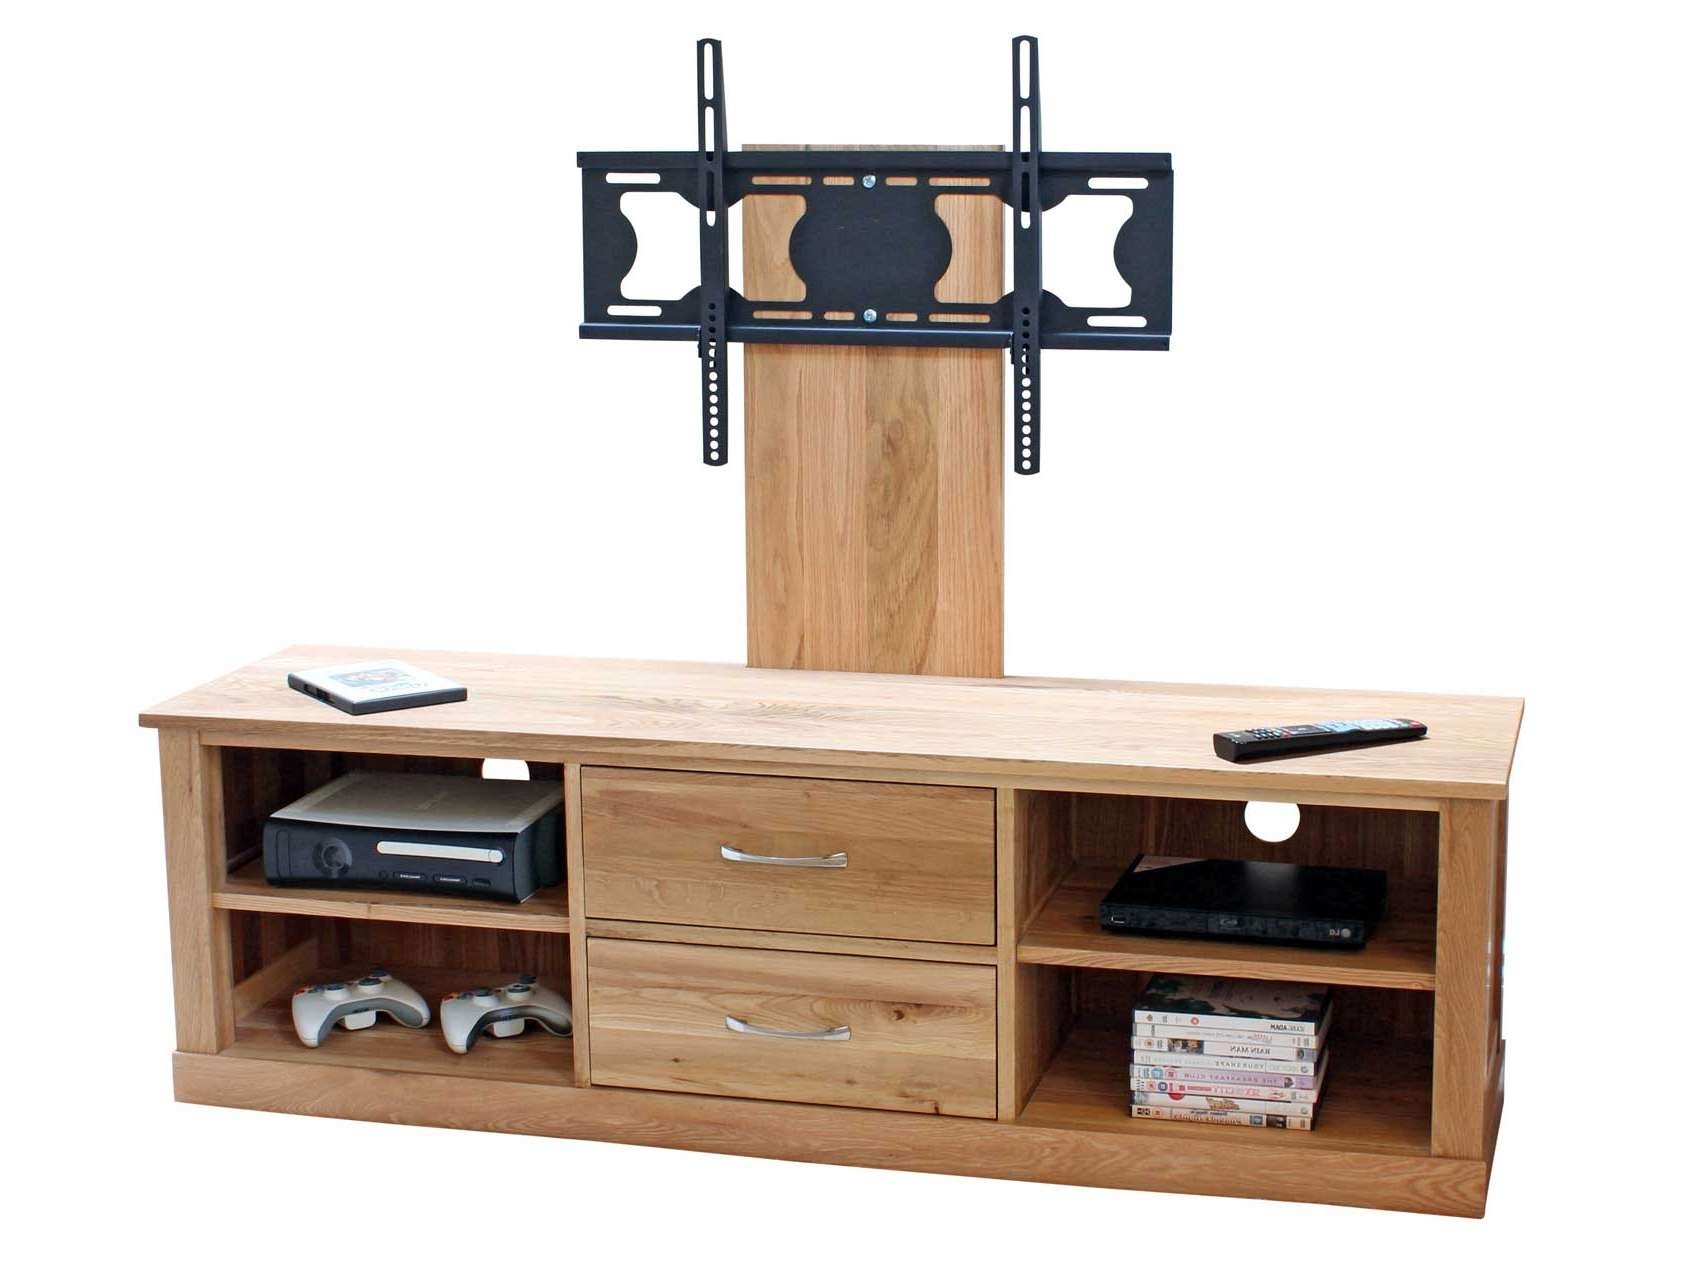 Cool Flat Screen Tv Stands With Mount | Homesfeed Inside Cheap Oak Tv Stands (View 8 of 15)